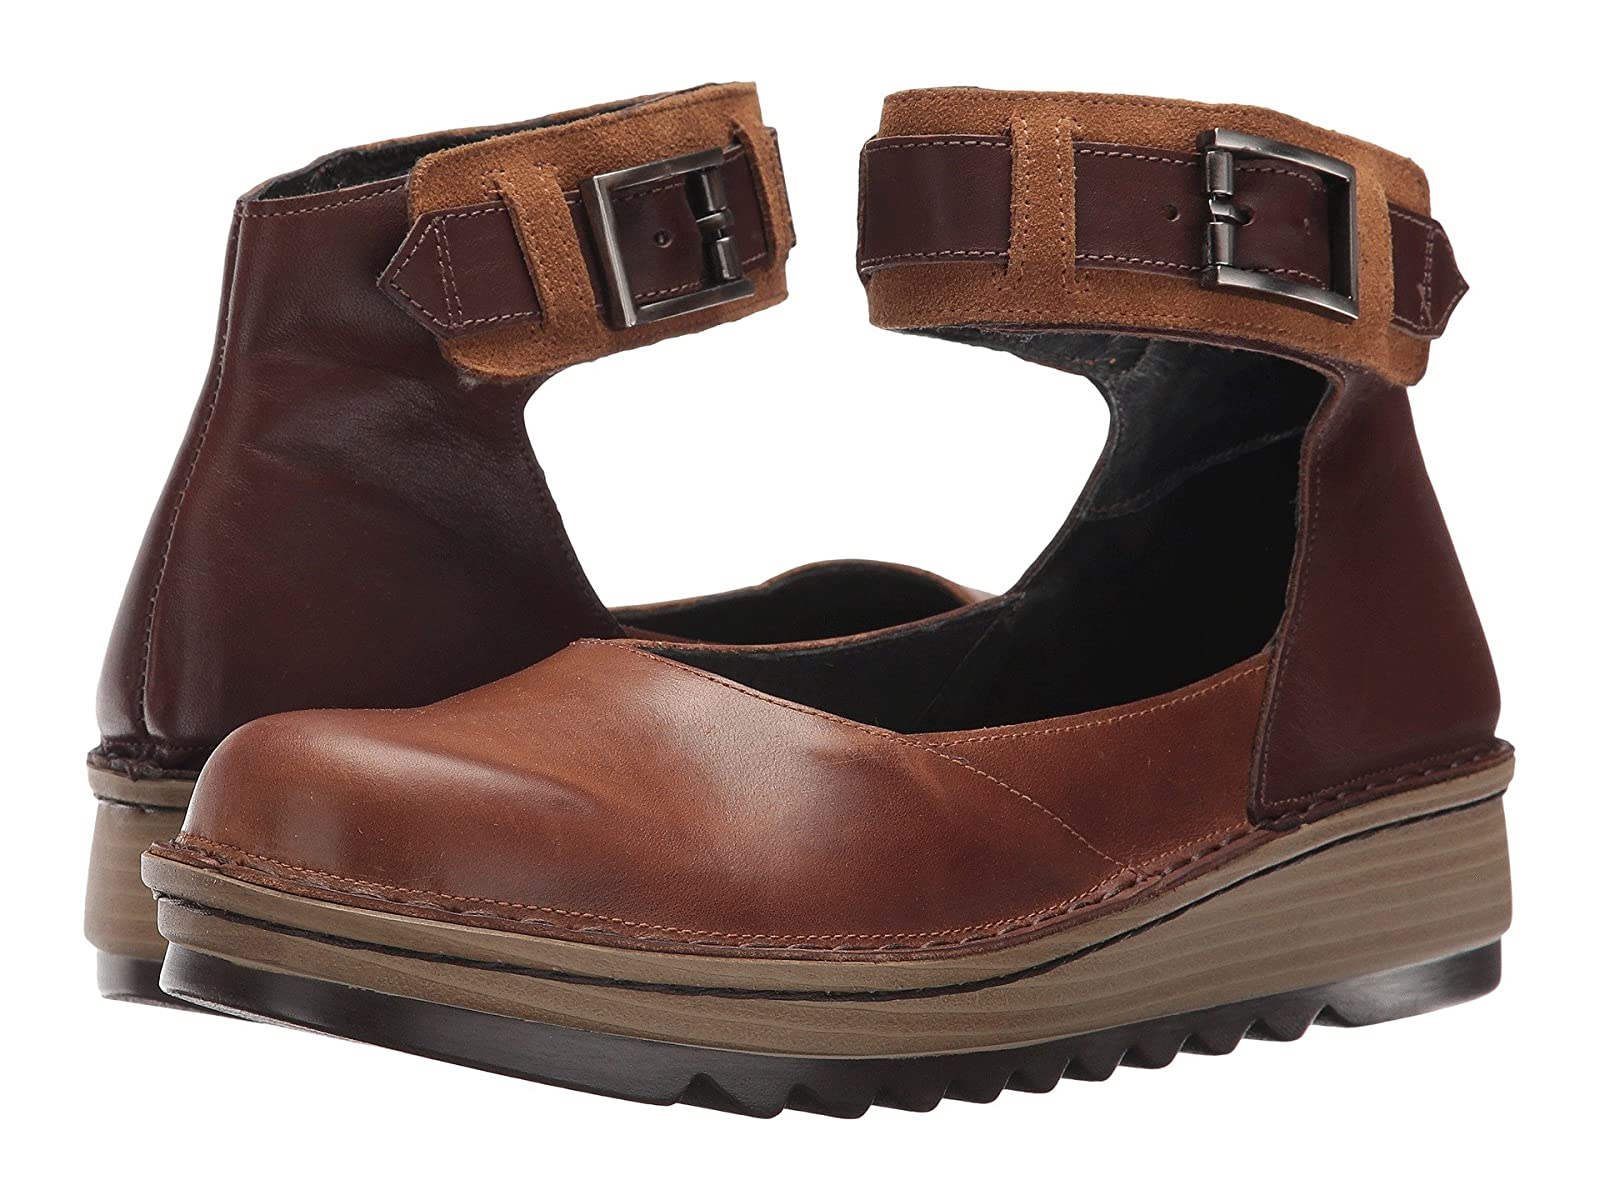 Naot SycamoreCheap and distinctive eye-catching shoes